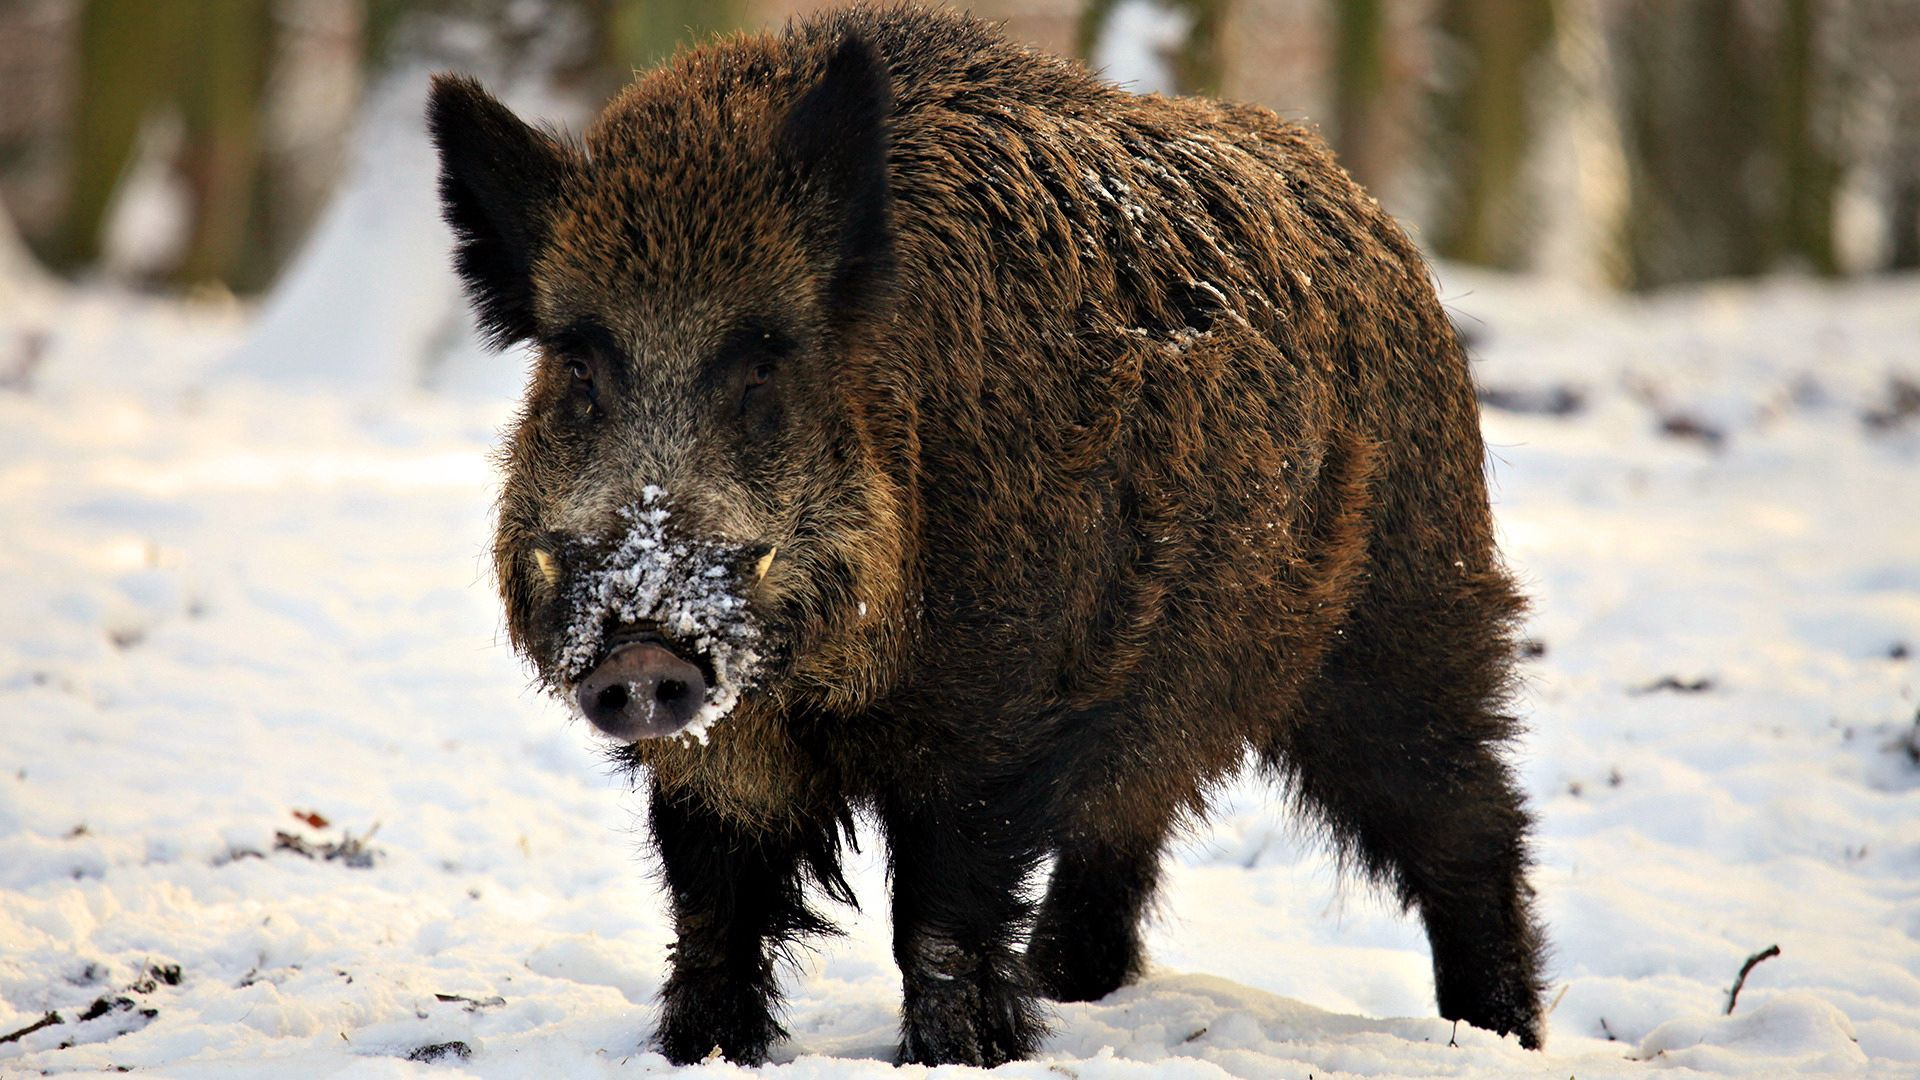 141321 download wallpaper Animals, Boar, Muzzle, Snow, Stroll screensavers and pictures for free